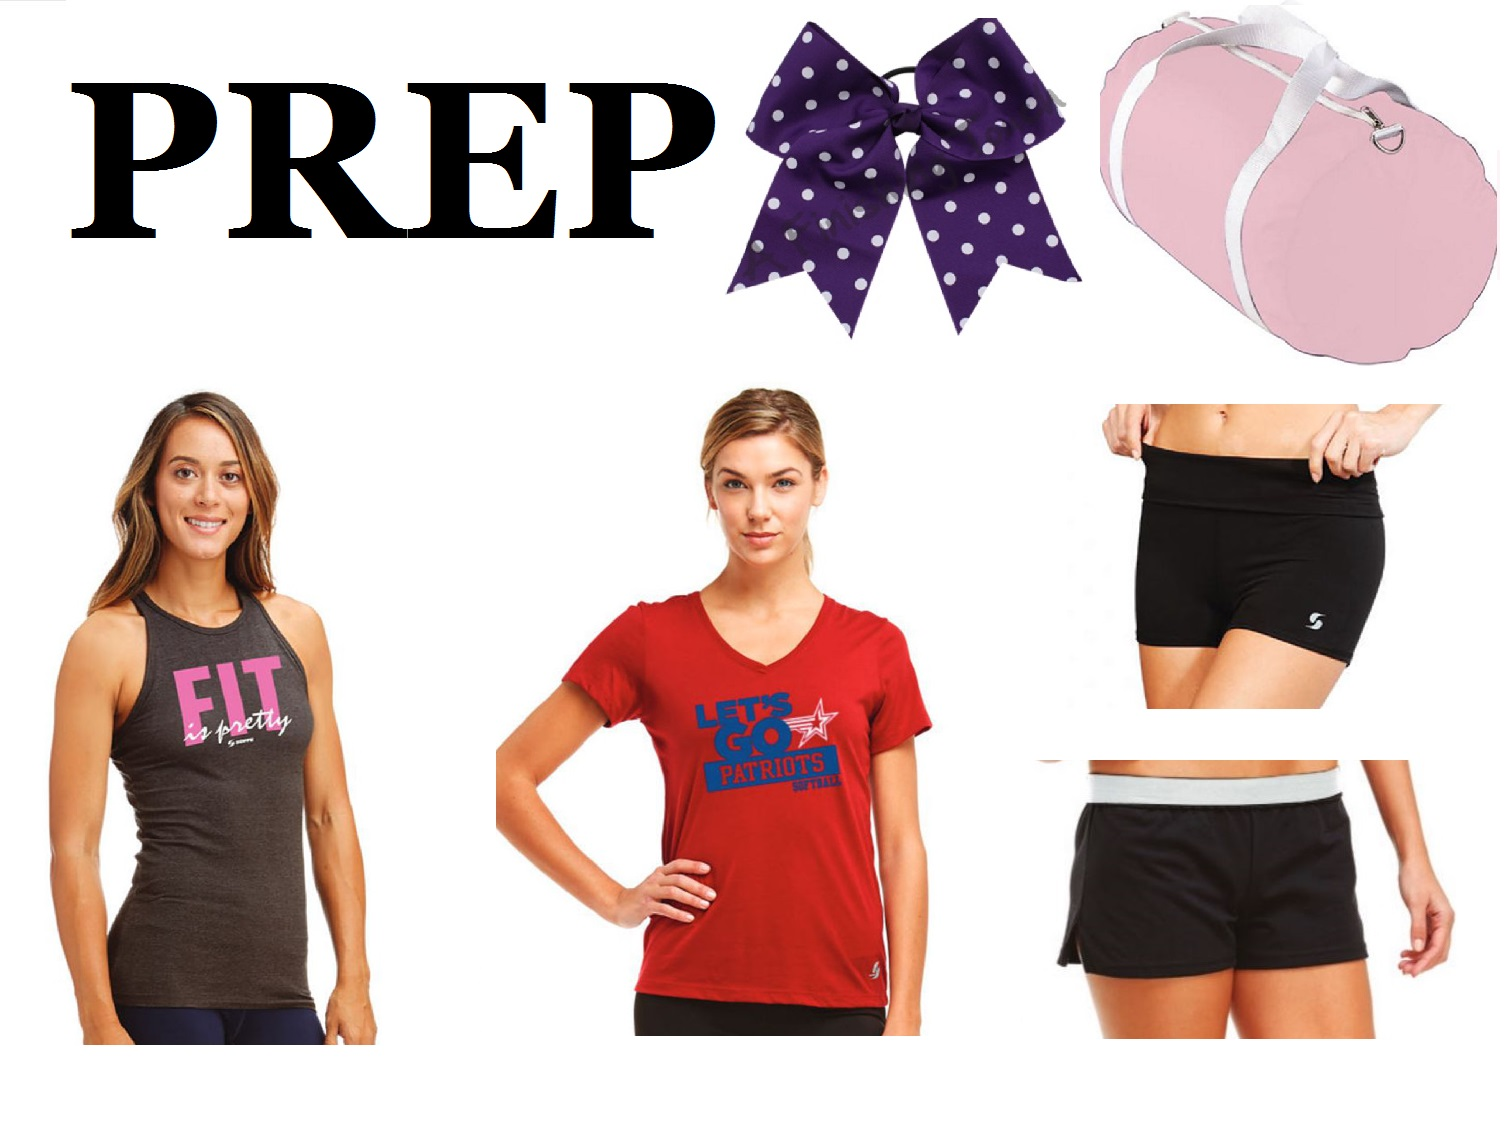 Prep Cheer Camp & Practice Wear